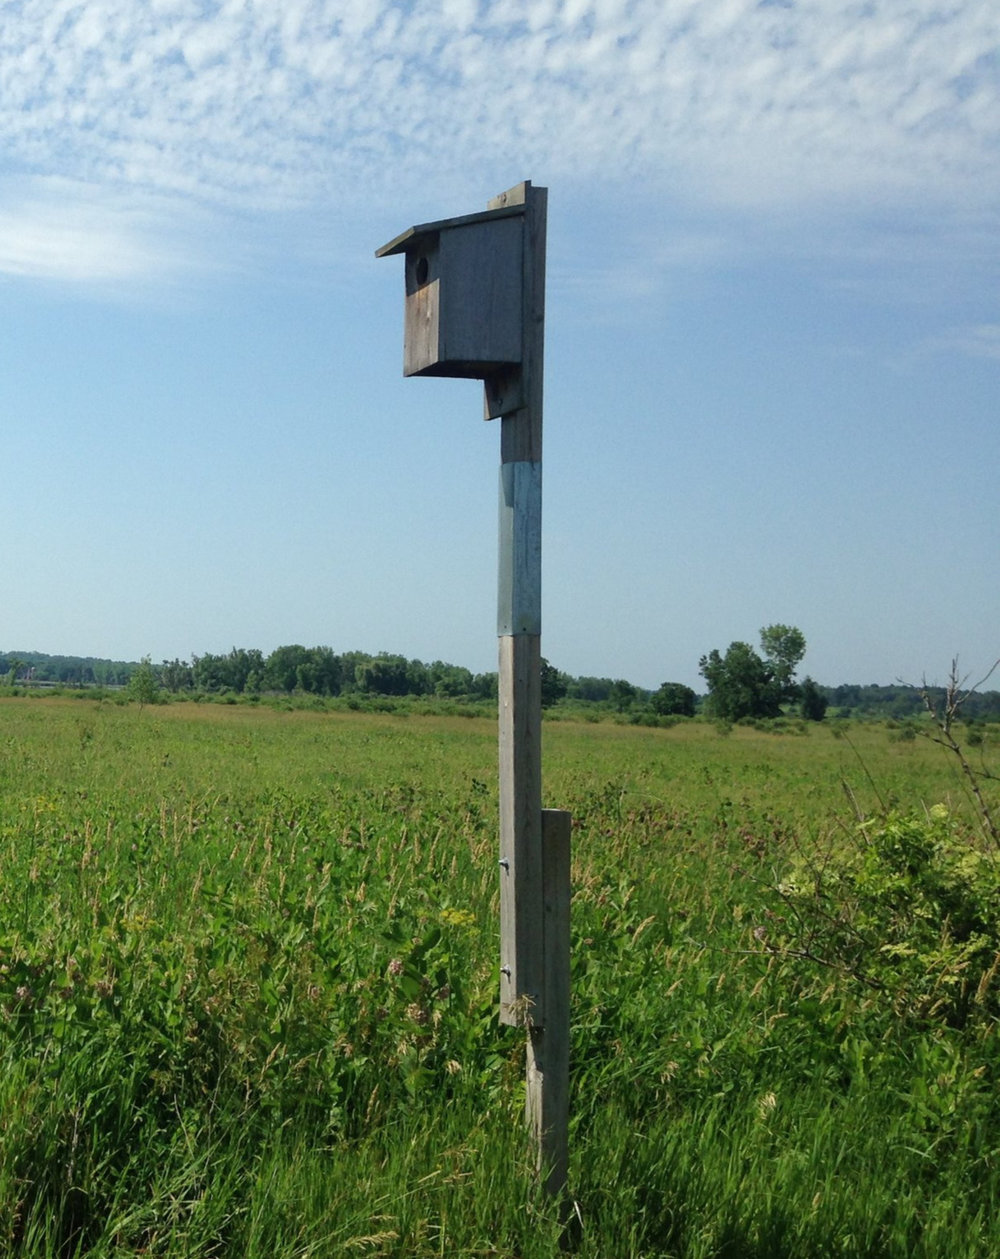 A kestrel nestbox sits in a grassland in southcentral Wisconsin. Photo by Madison Audubon